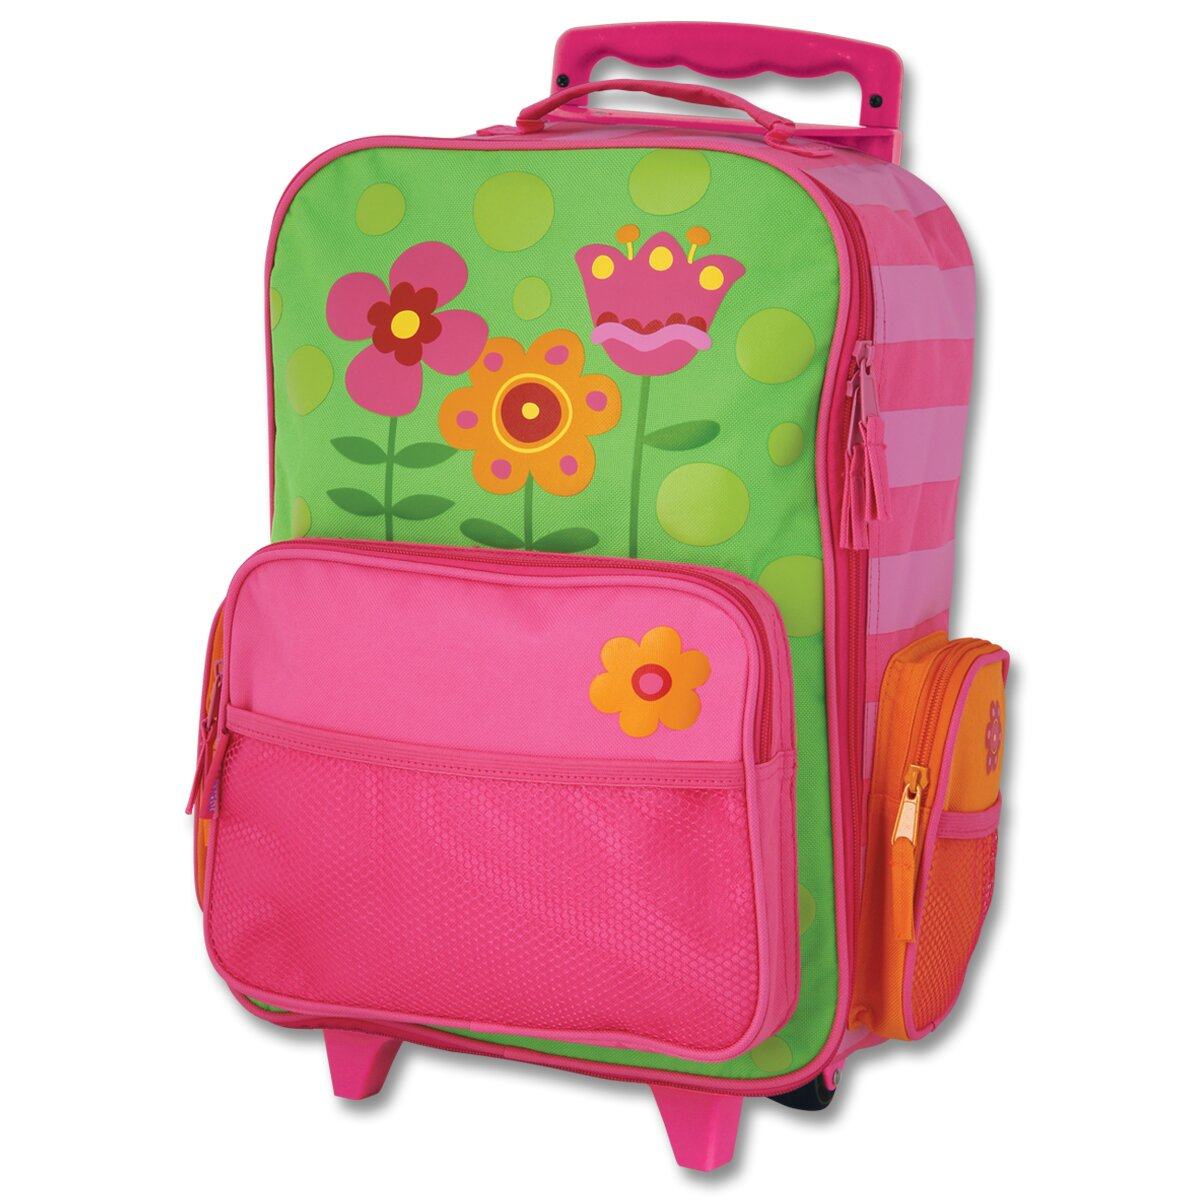 Similiar Monogrammed Rolling Backpacks For Girls Keywords